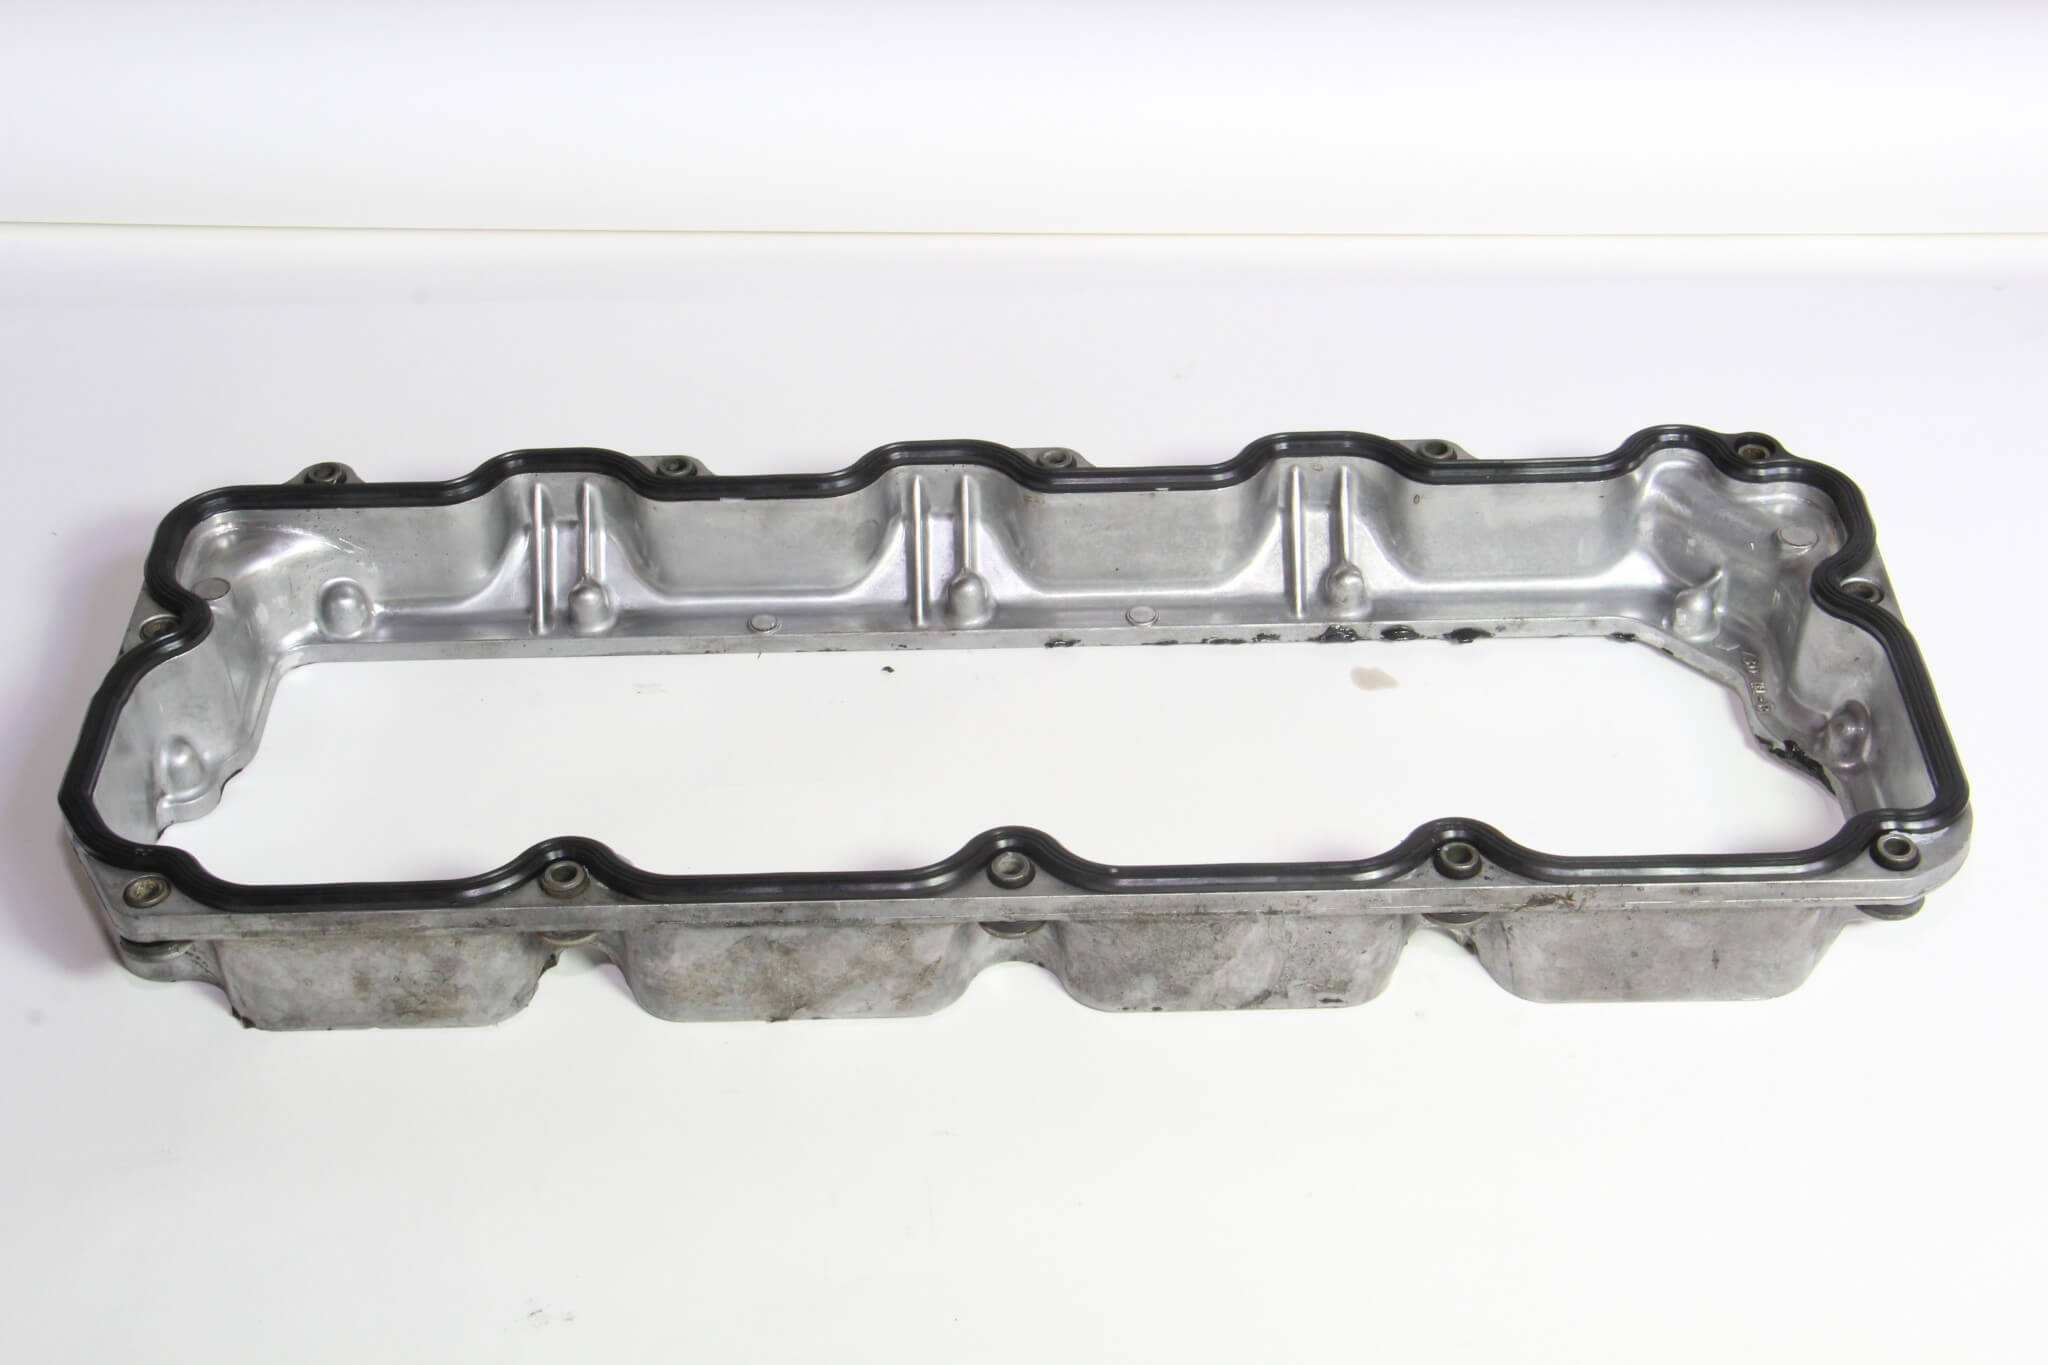 16. Before installing the bottom valve cover, the base rubber gasket was glued into position and allowed time to cure before being installed to the head surface.